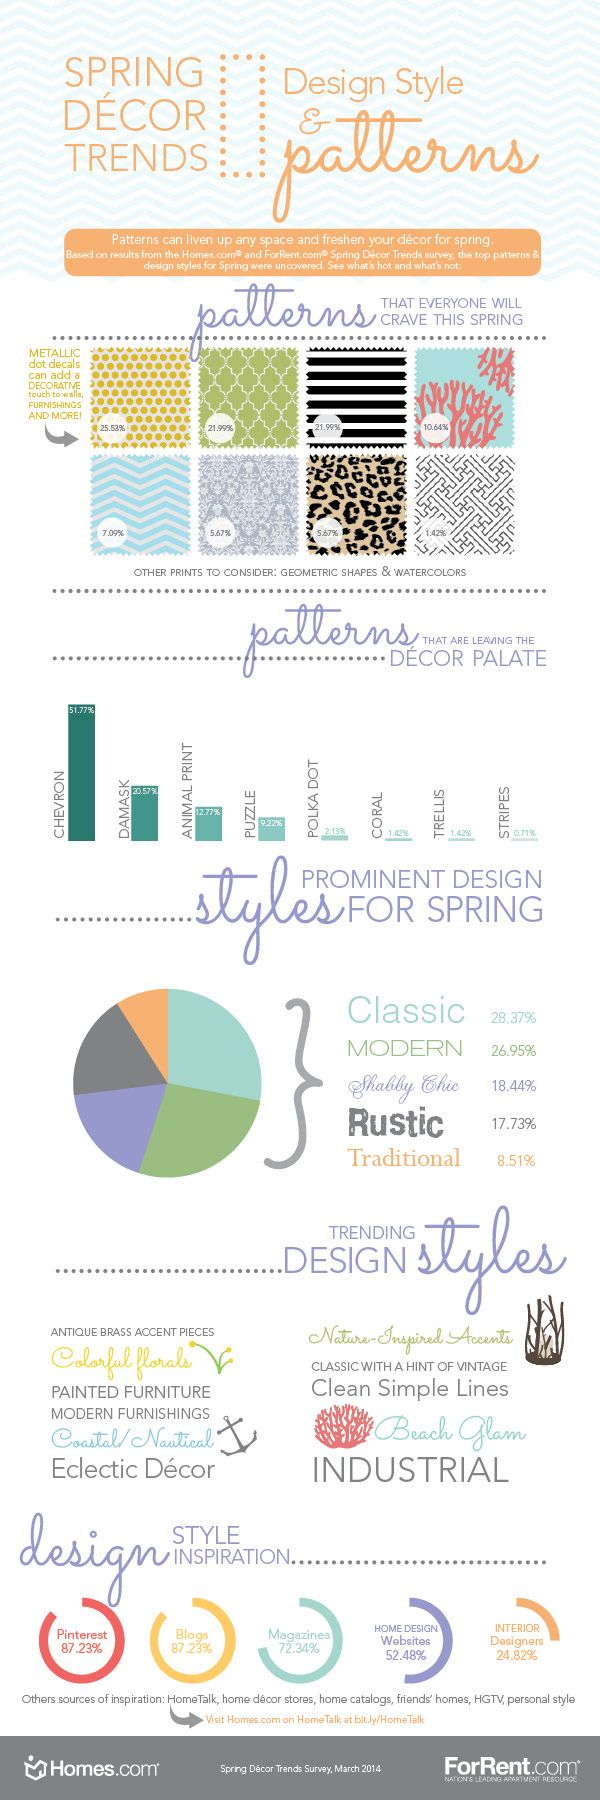 Which #HomeDecor patterns are hot for spring? Find out with this great #infographic and get going: